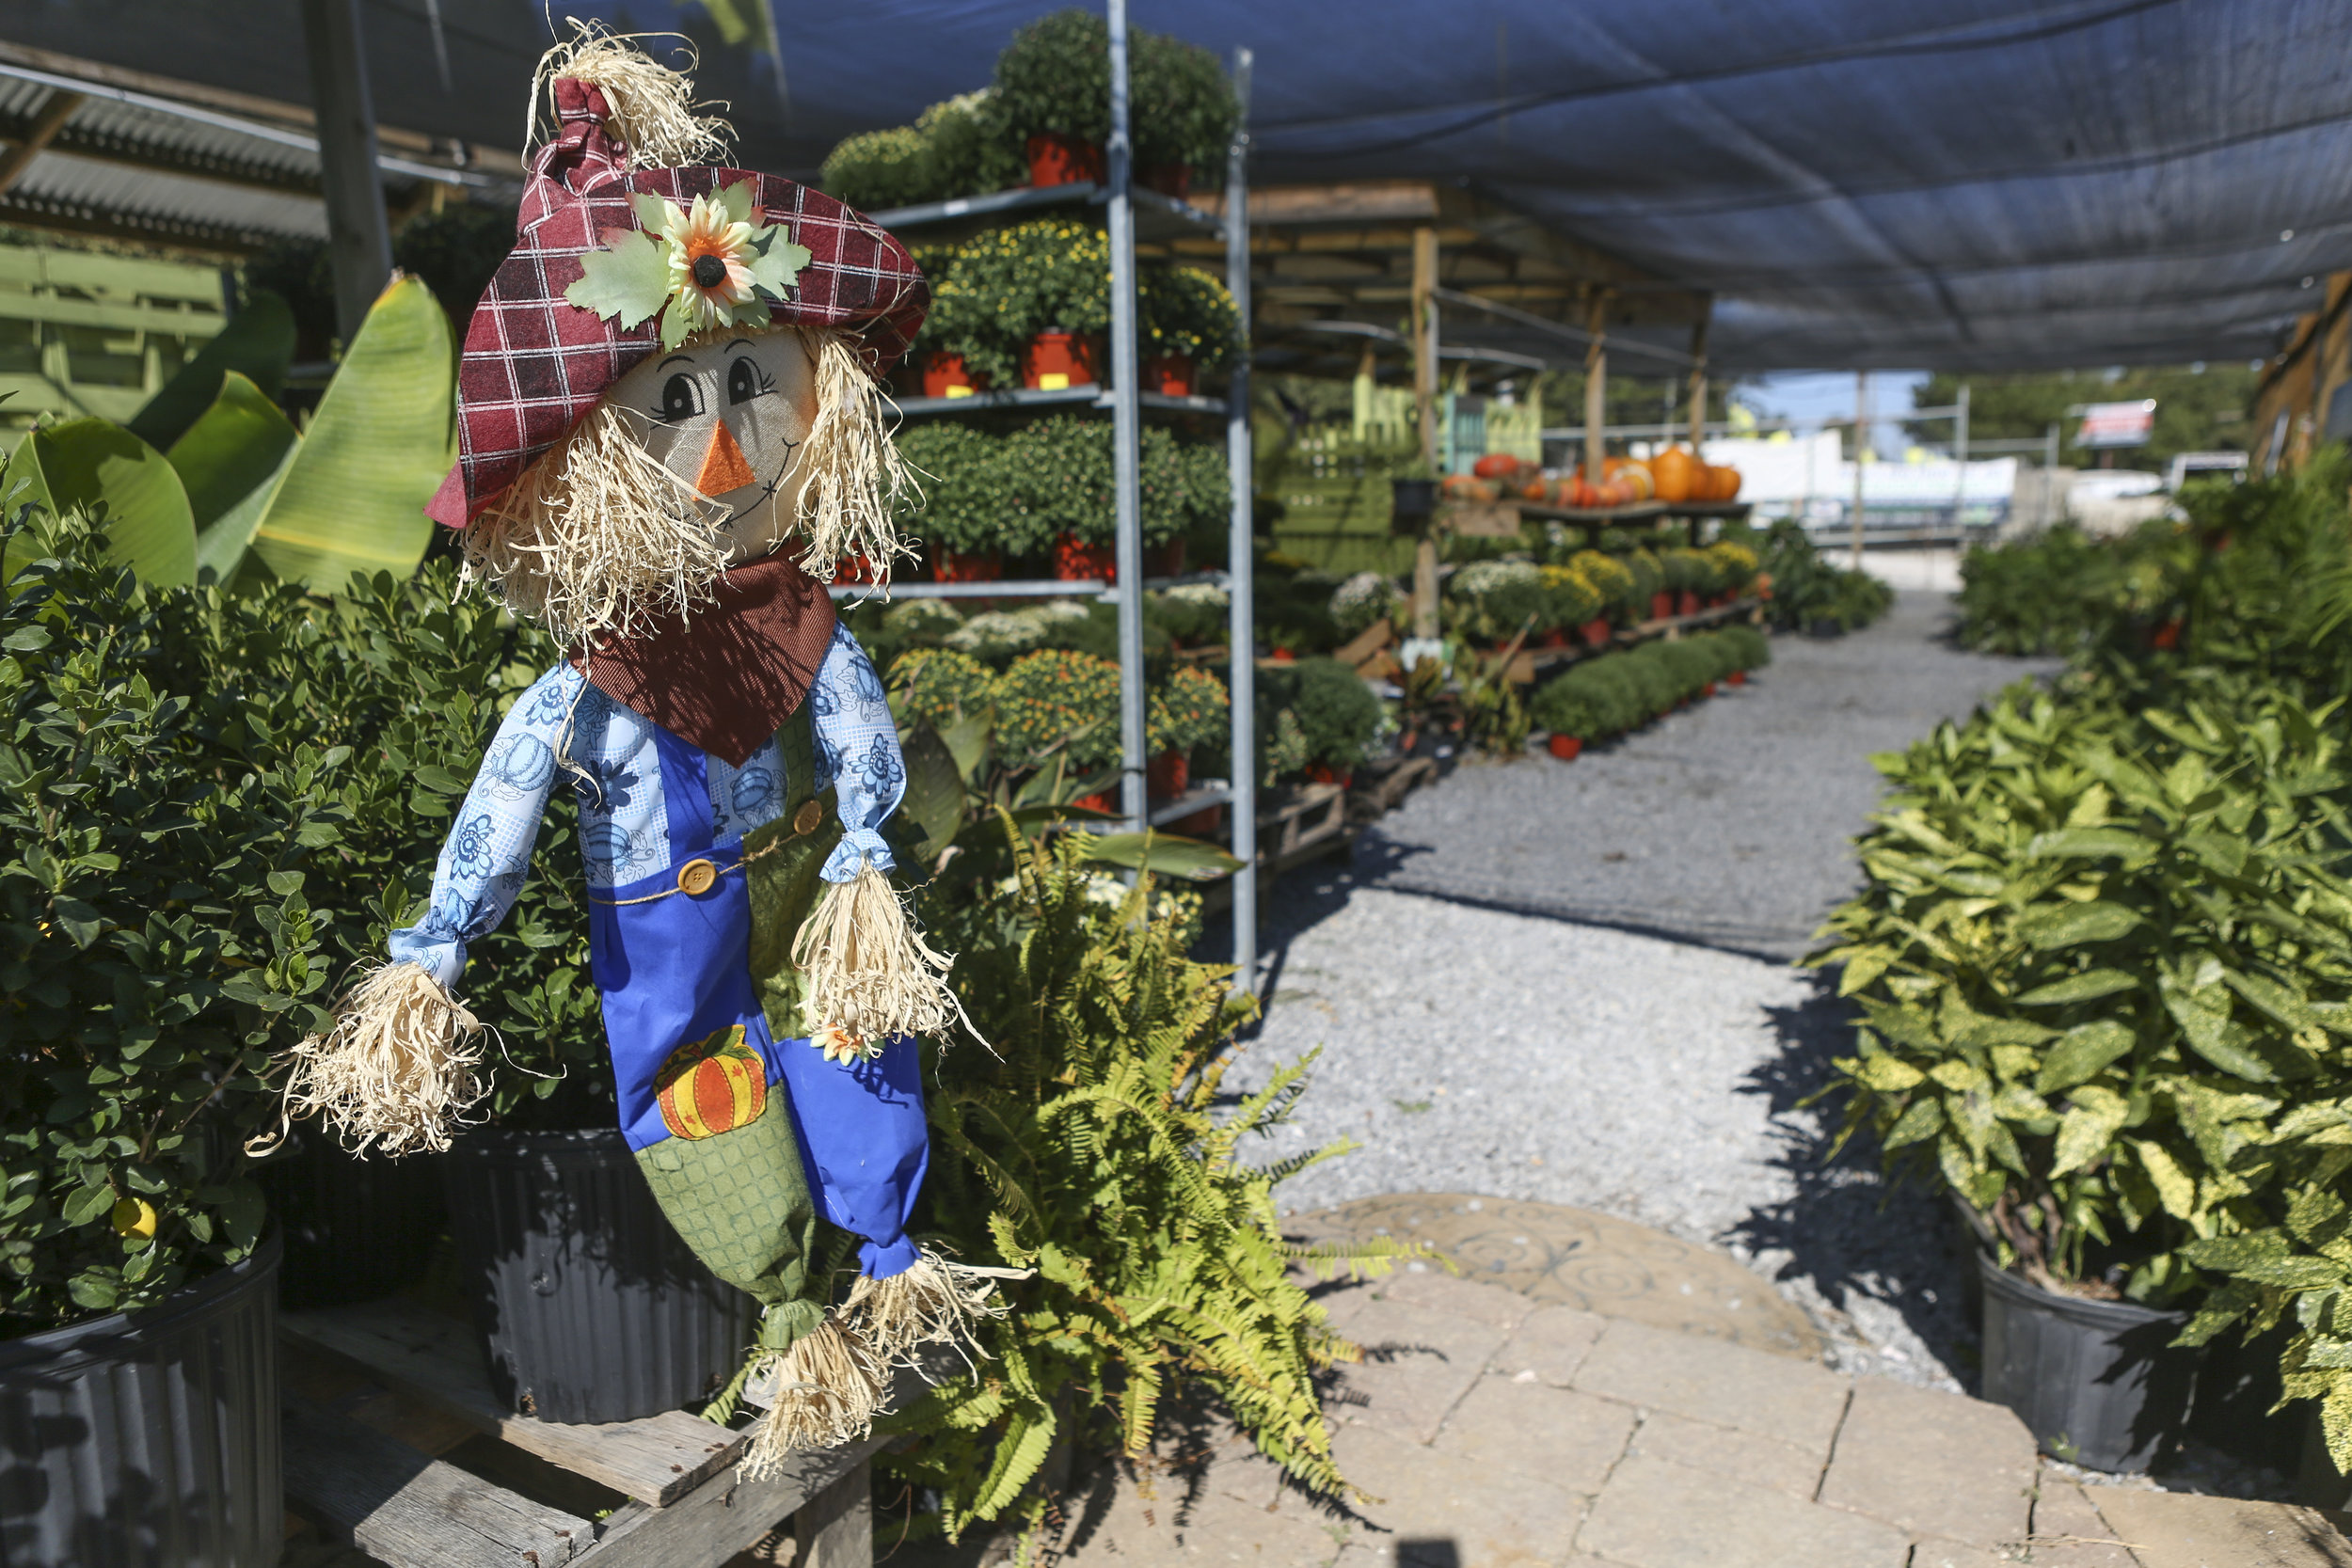 Season plants are available at the Secret Garden